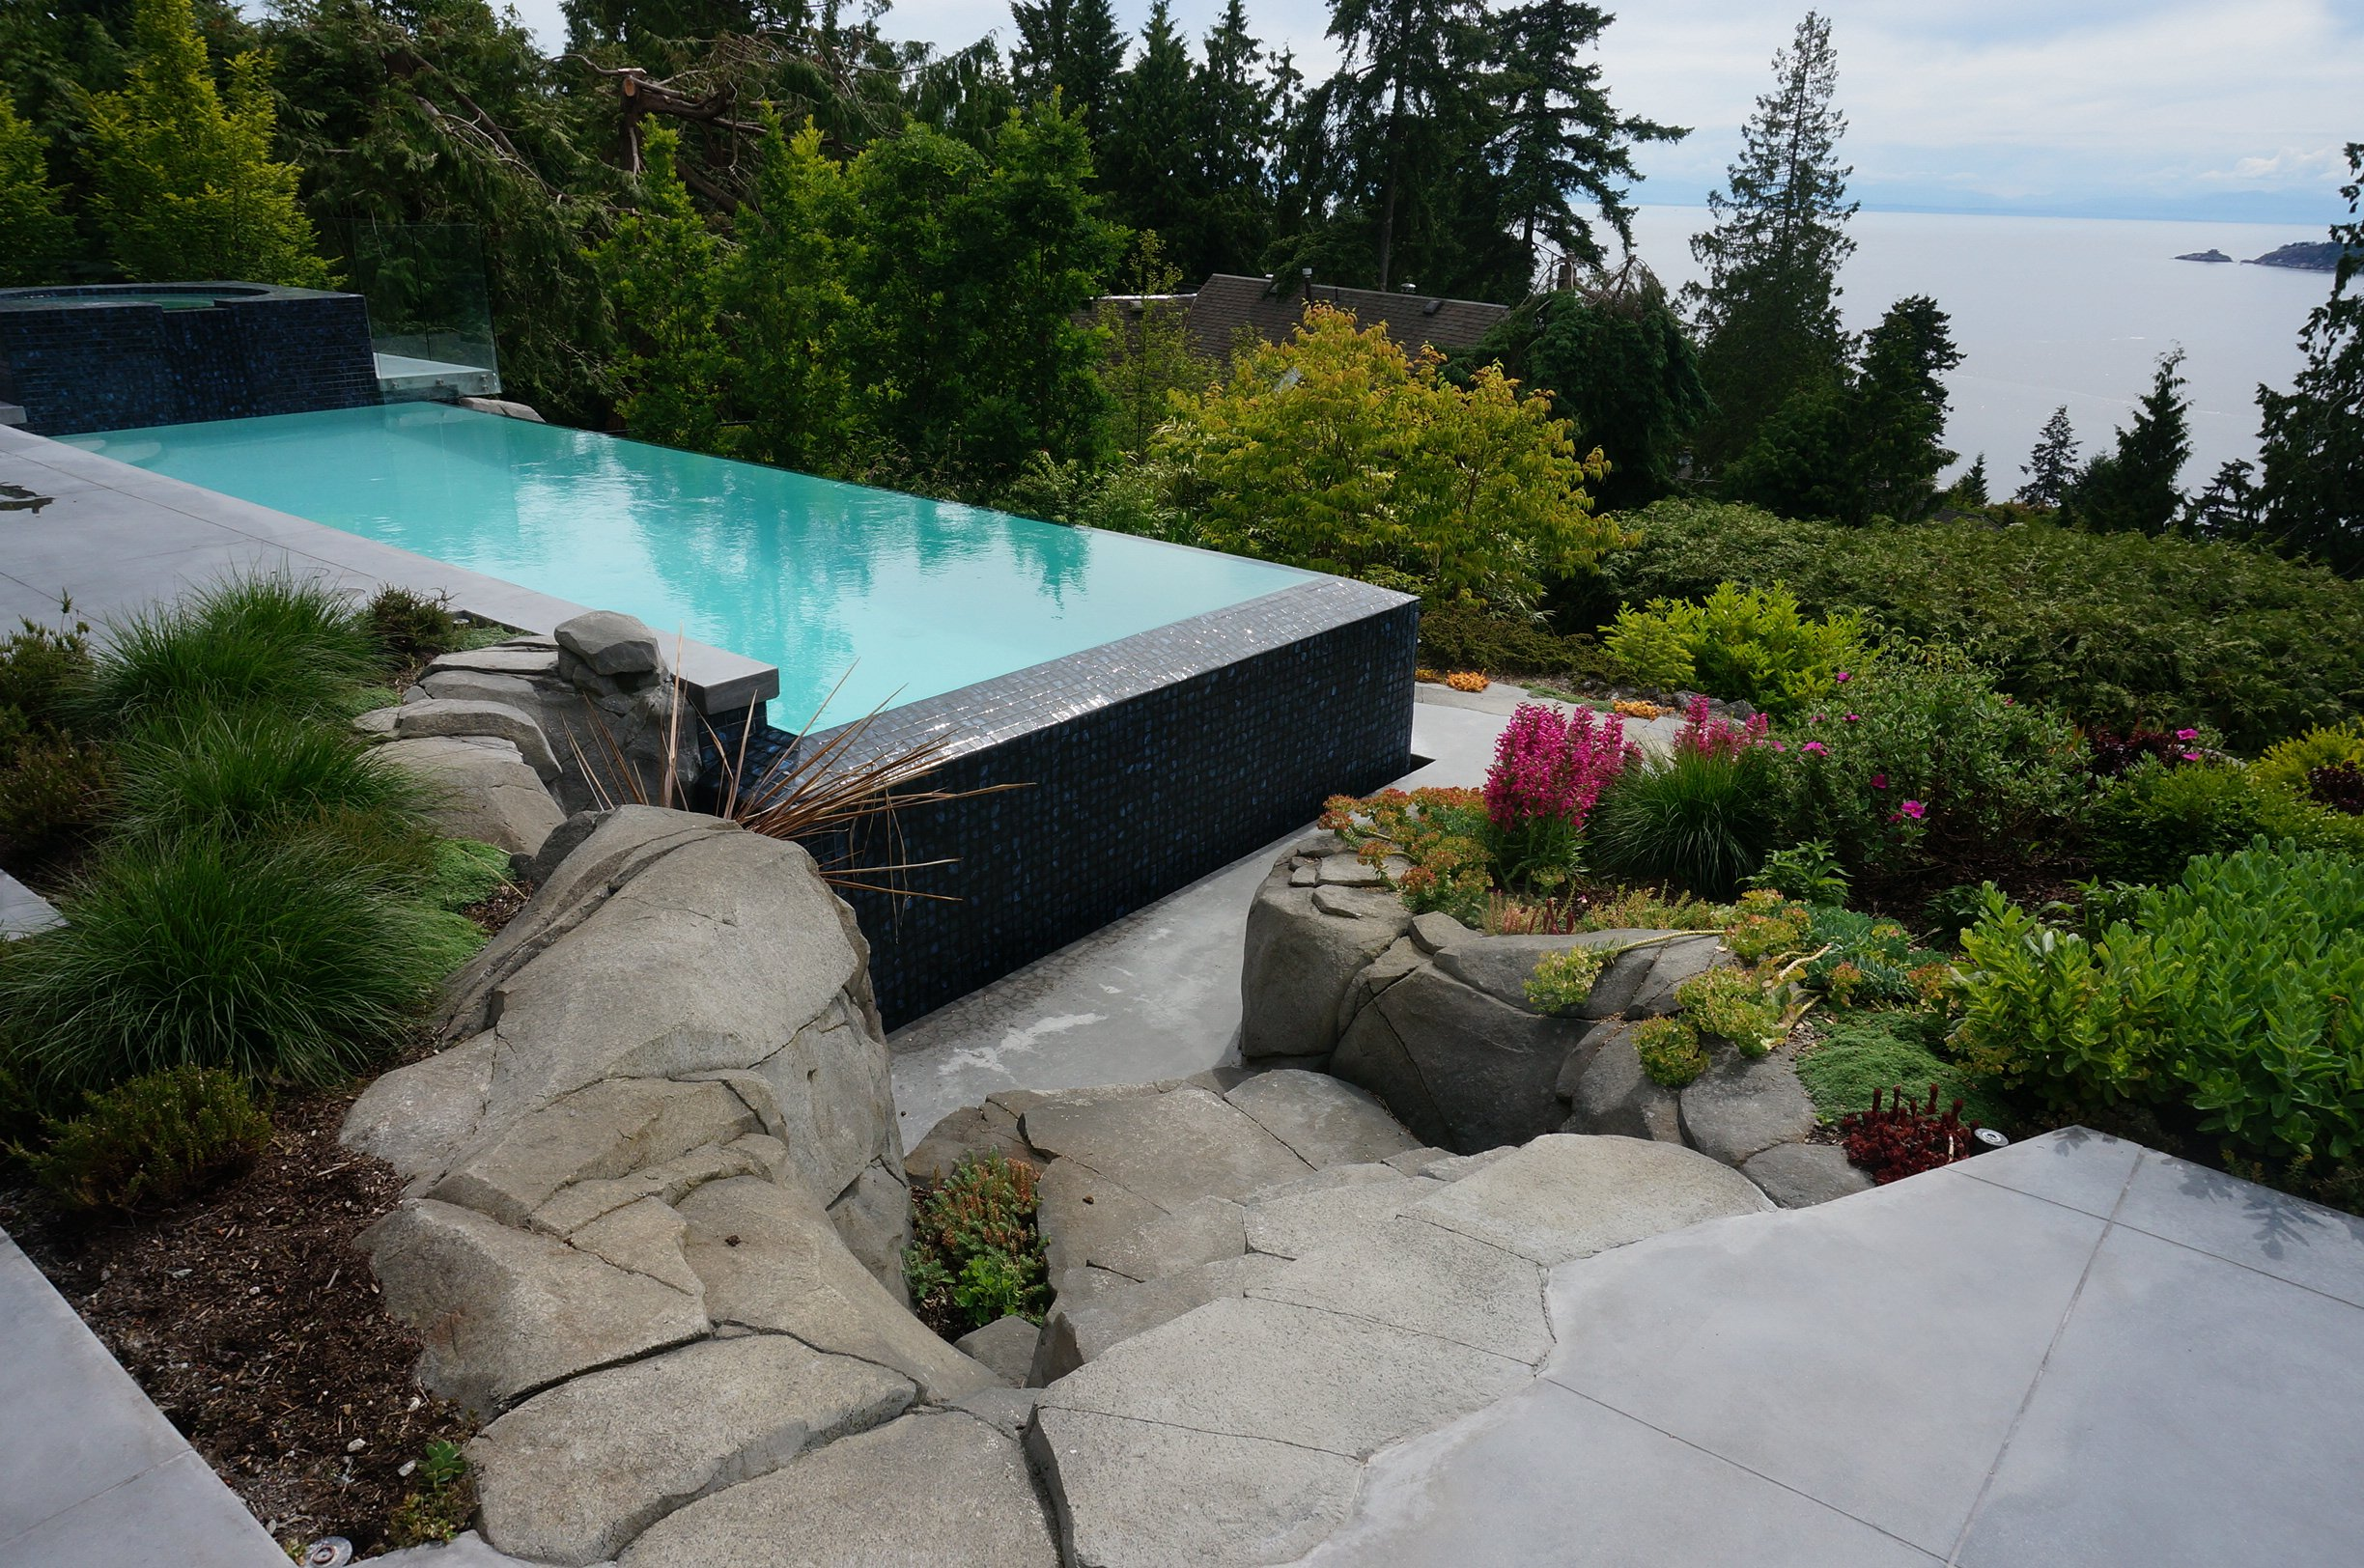 West vancouver pool by trasolini pools trasolini pools ltd for Pool design vancouver